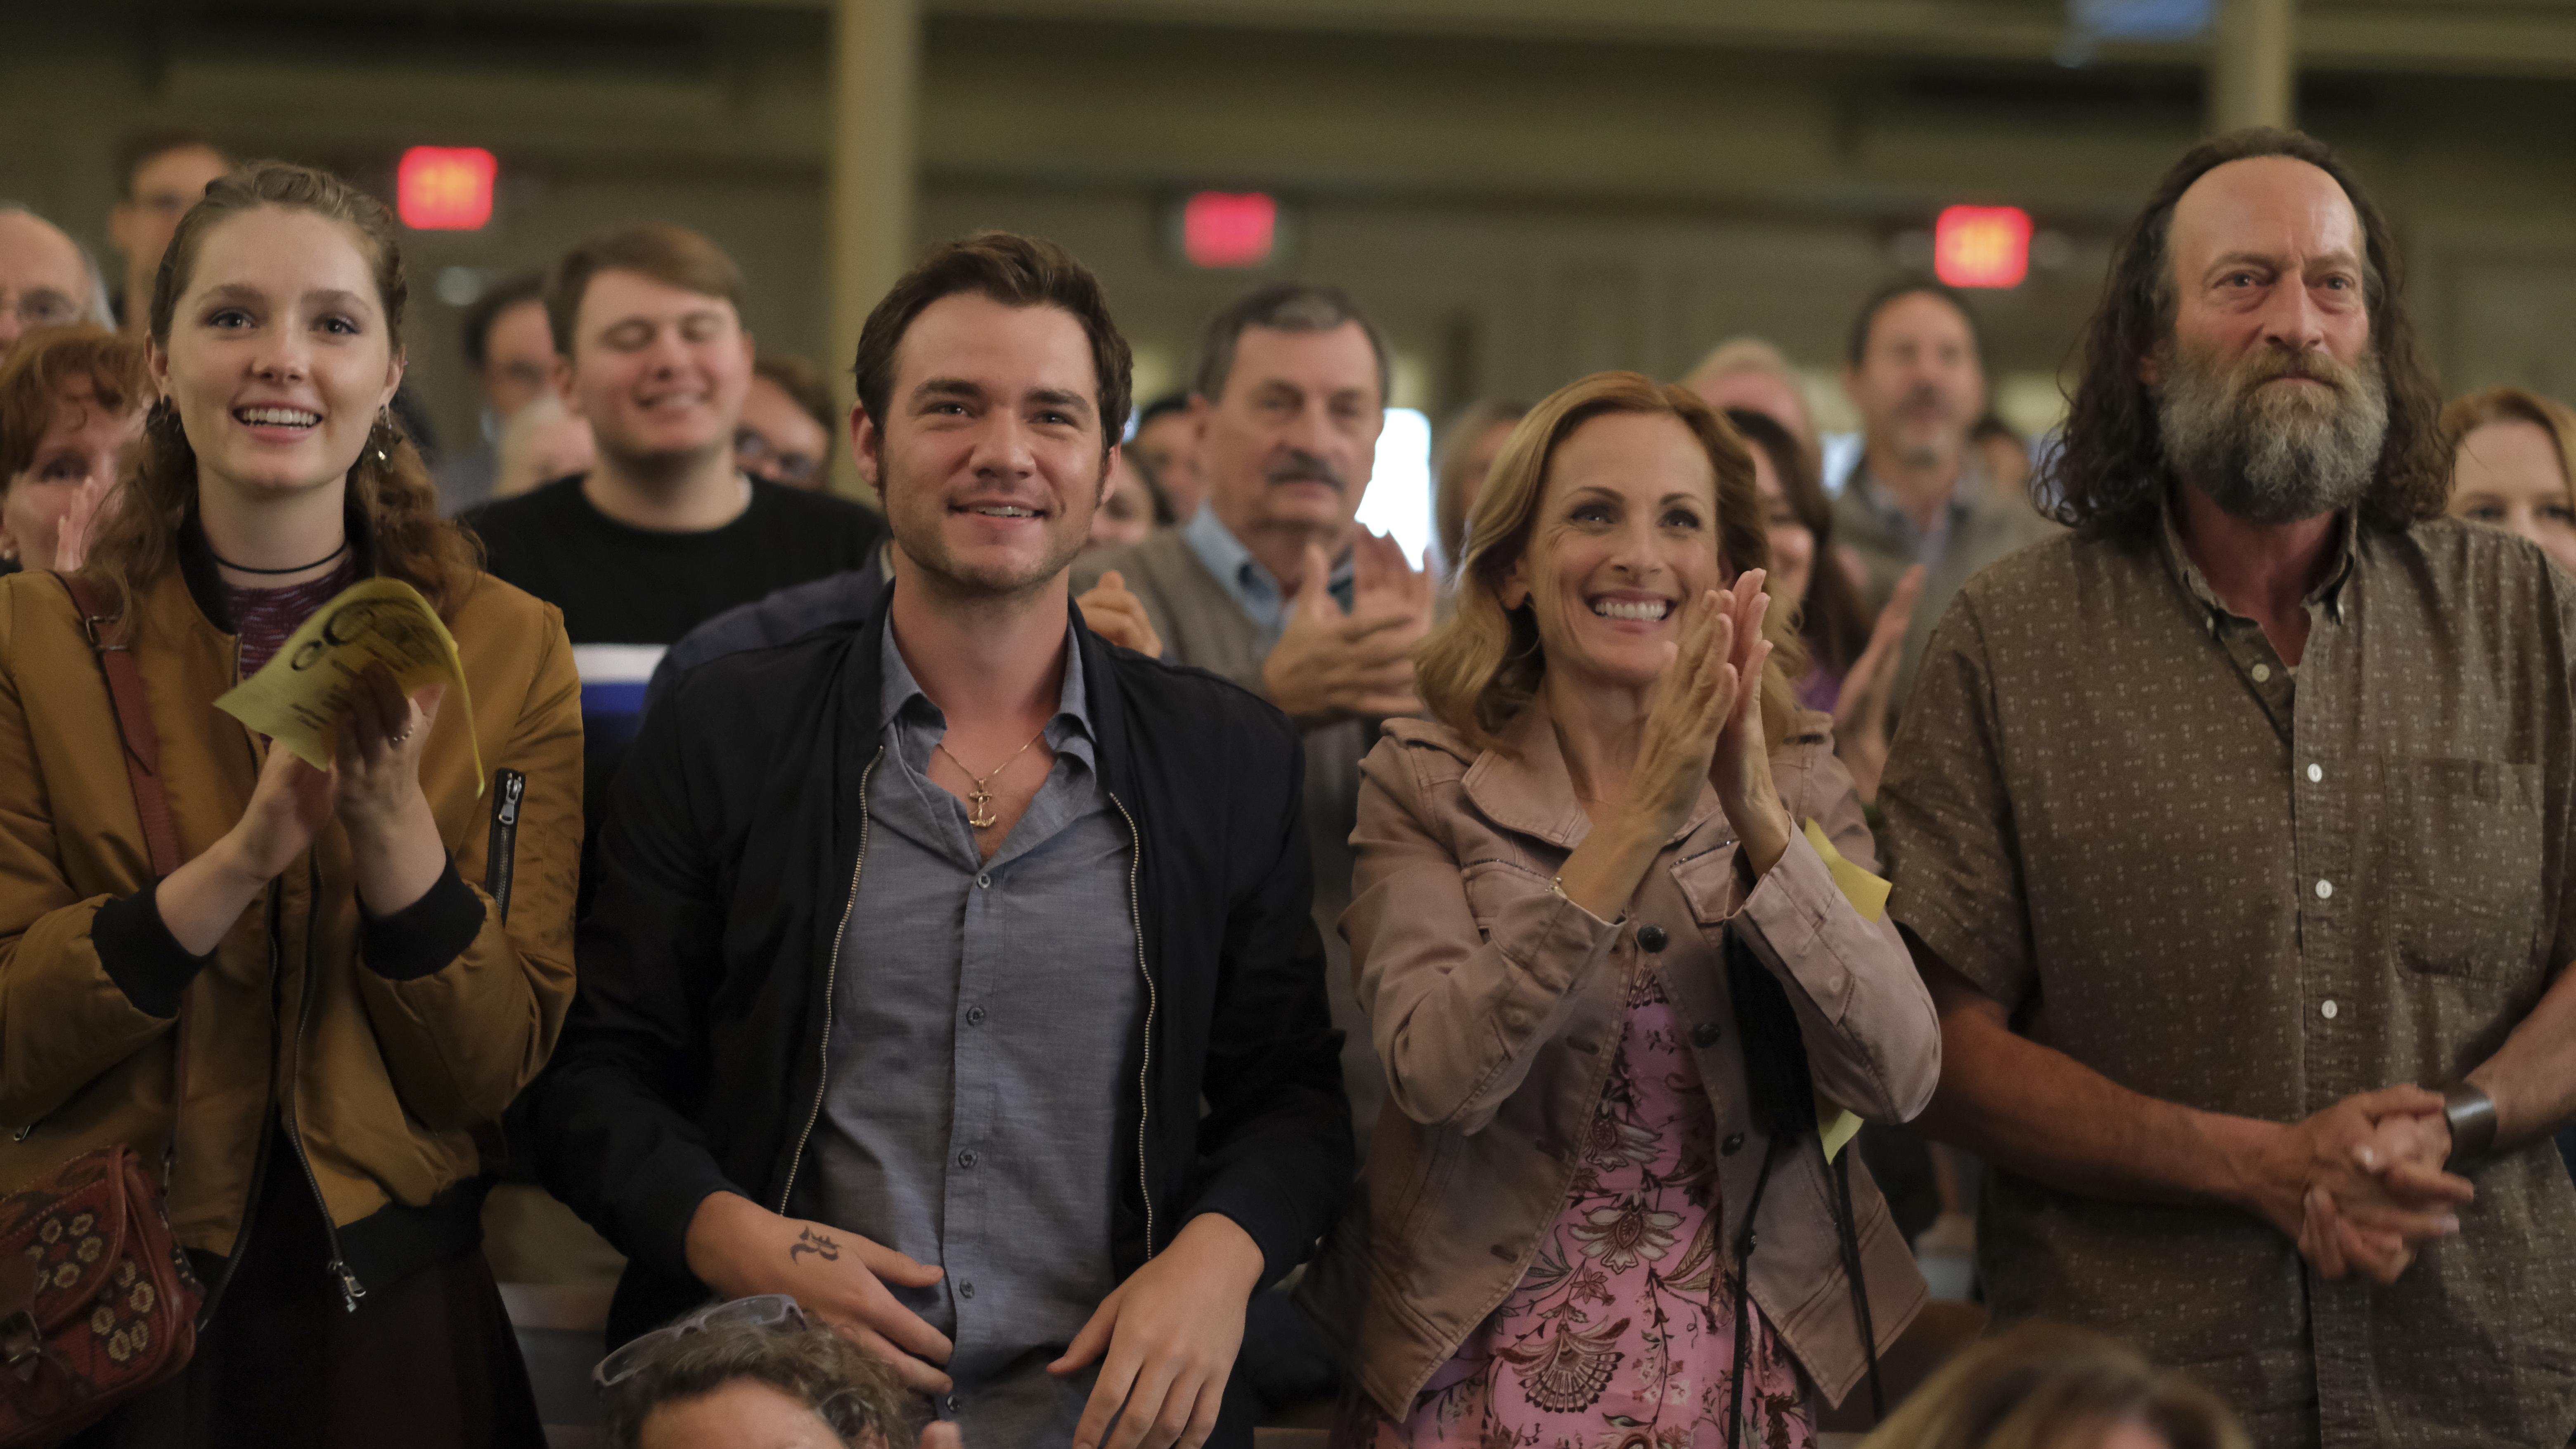 Marlee Matlin, second from right, plays the deaf mother of a hearing child in this family drama